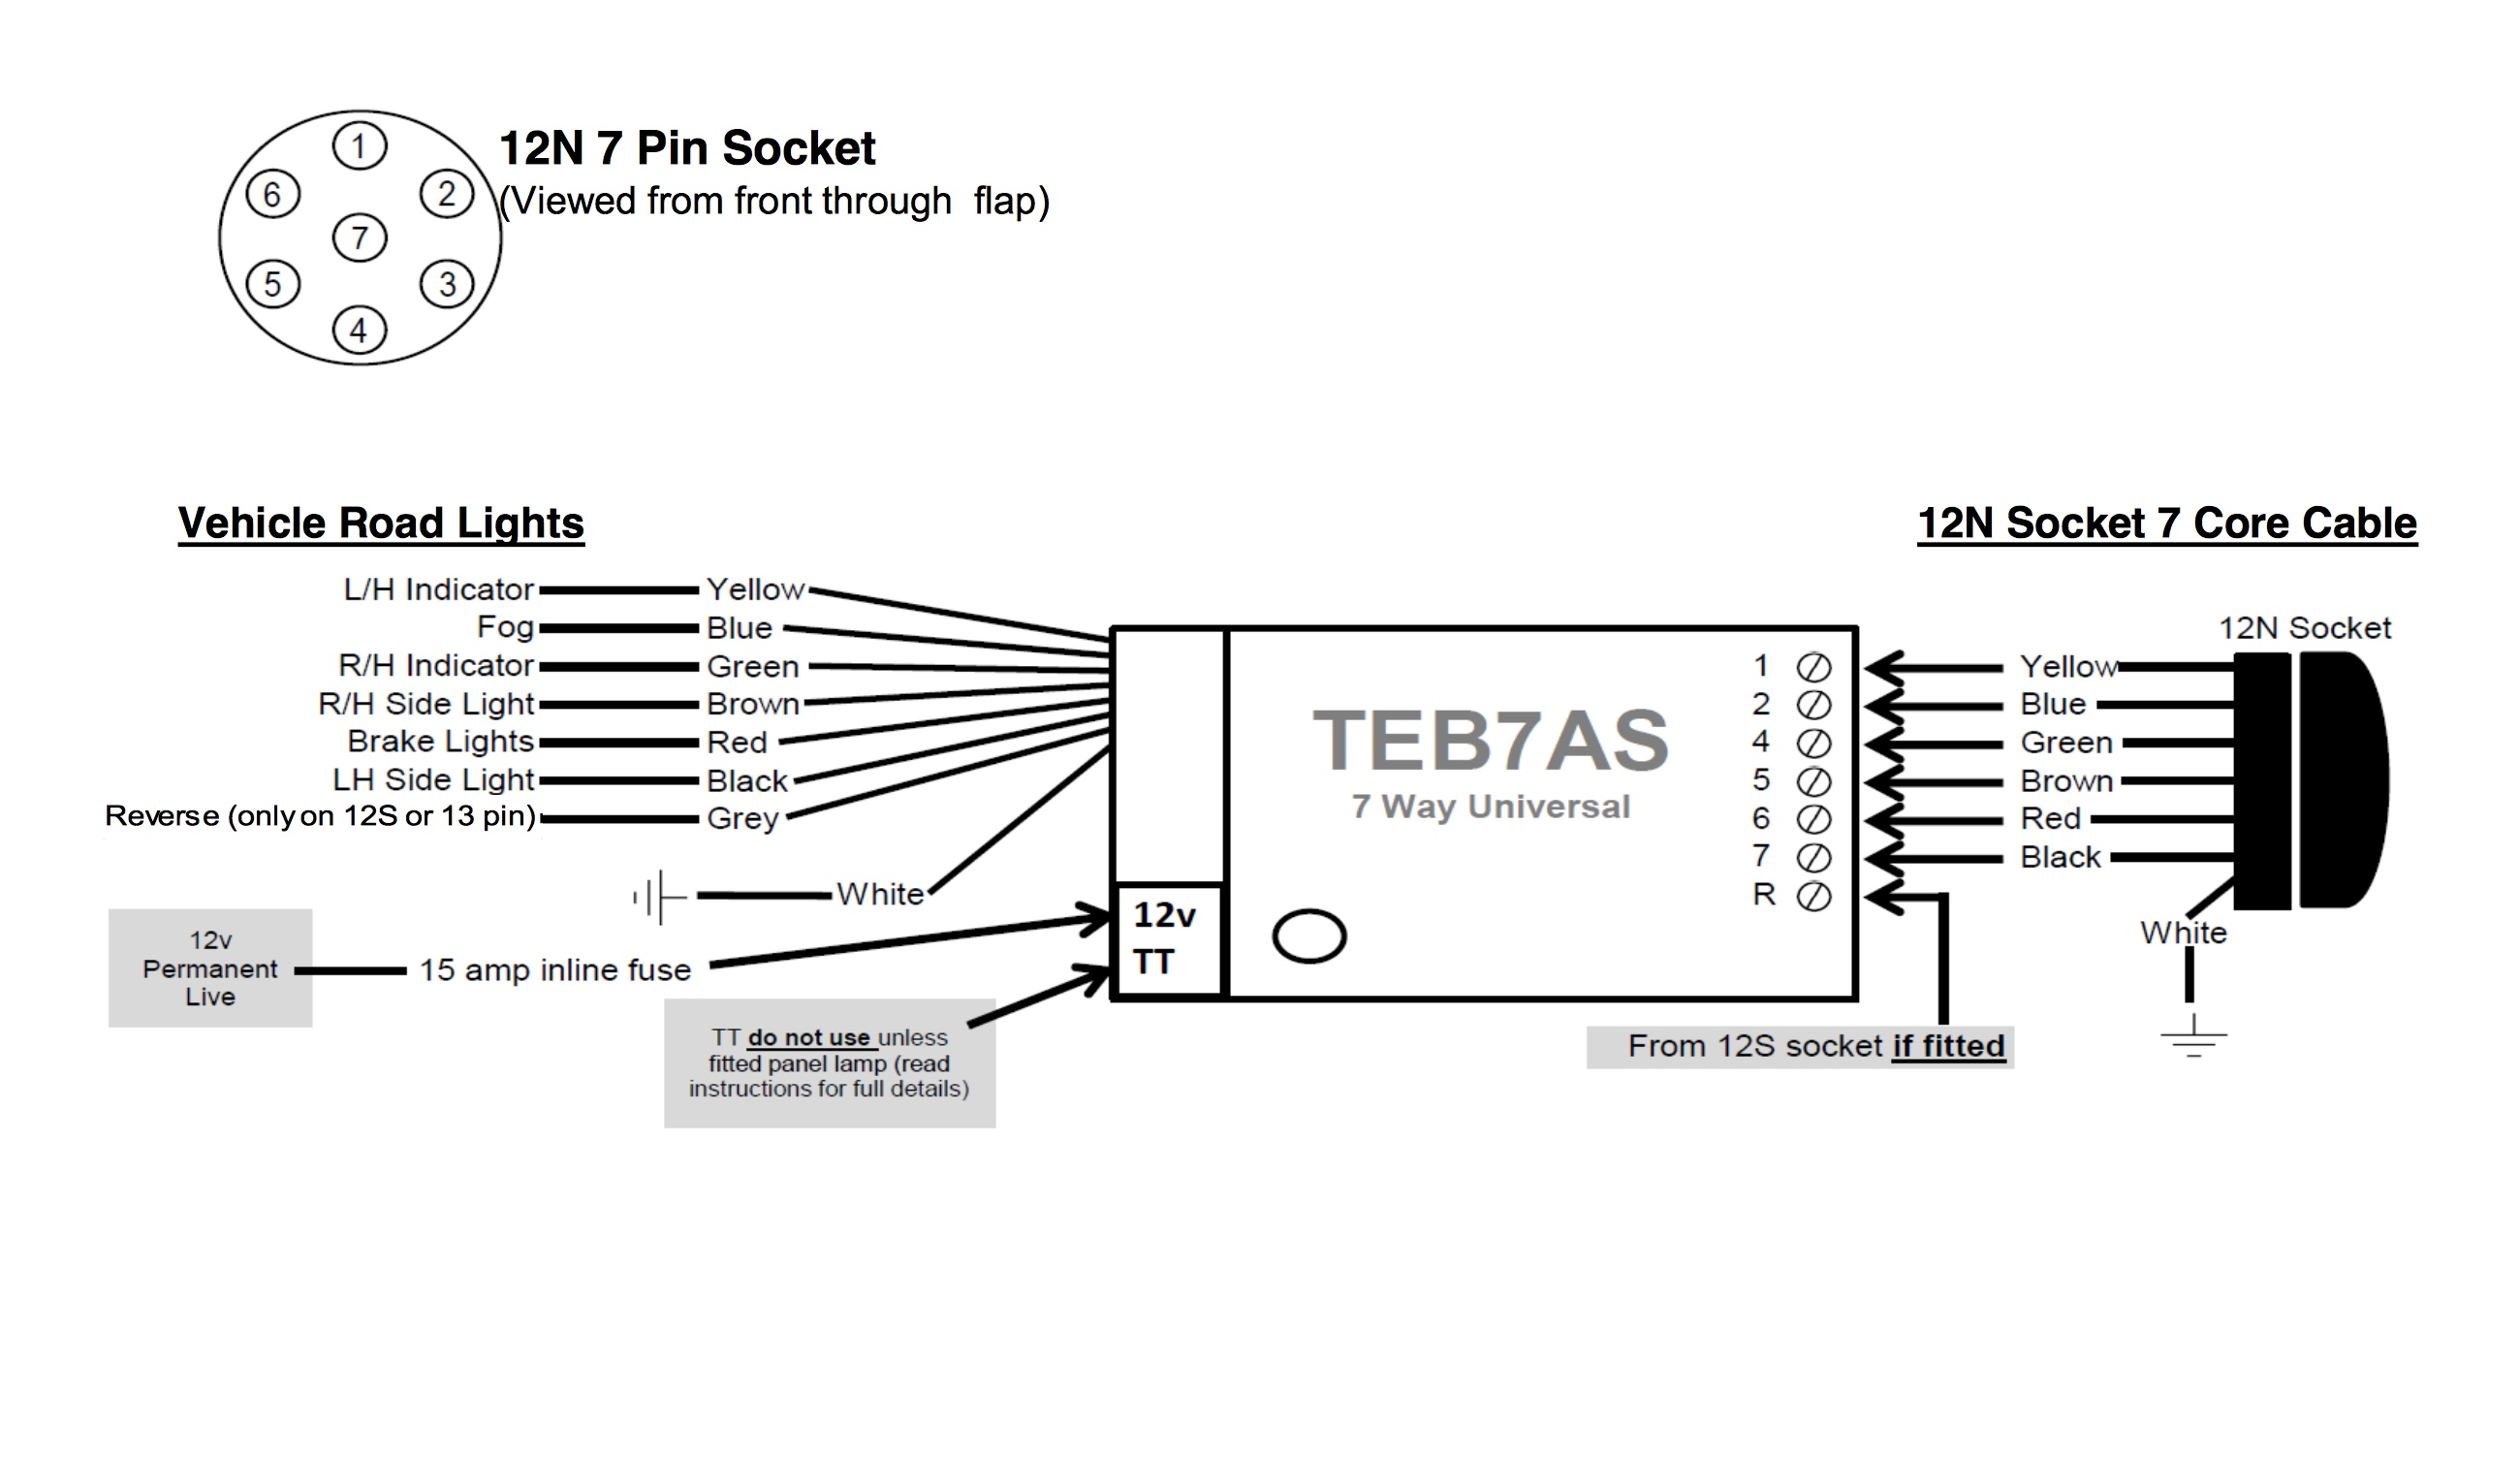 Bobcat 7 Pin Connector Wiring Diagram from towtal.co.uk